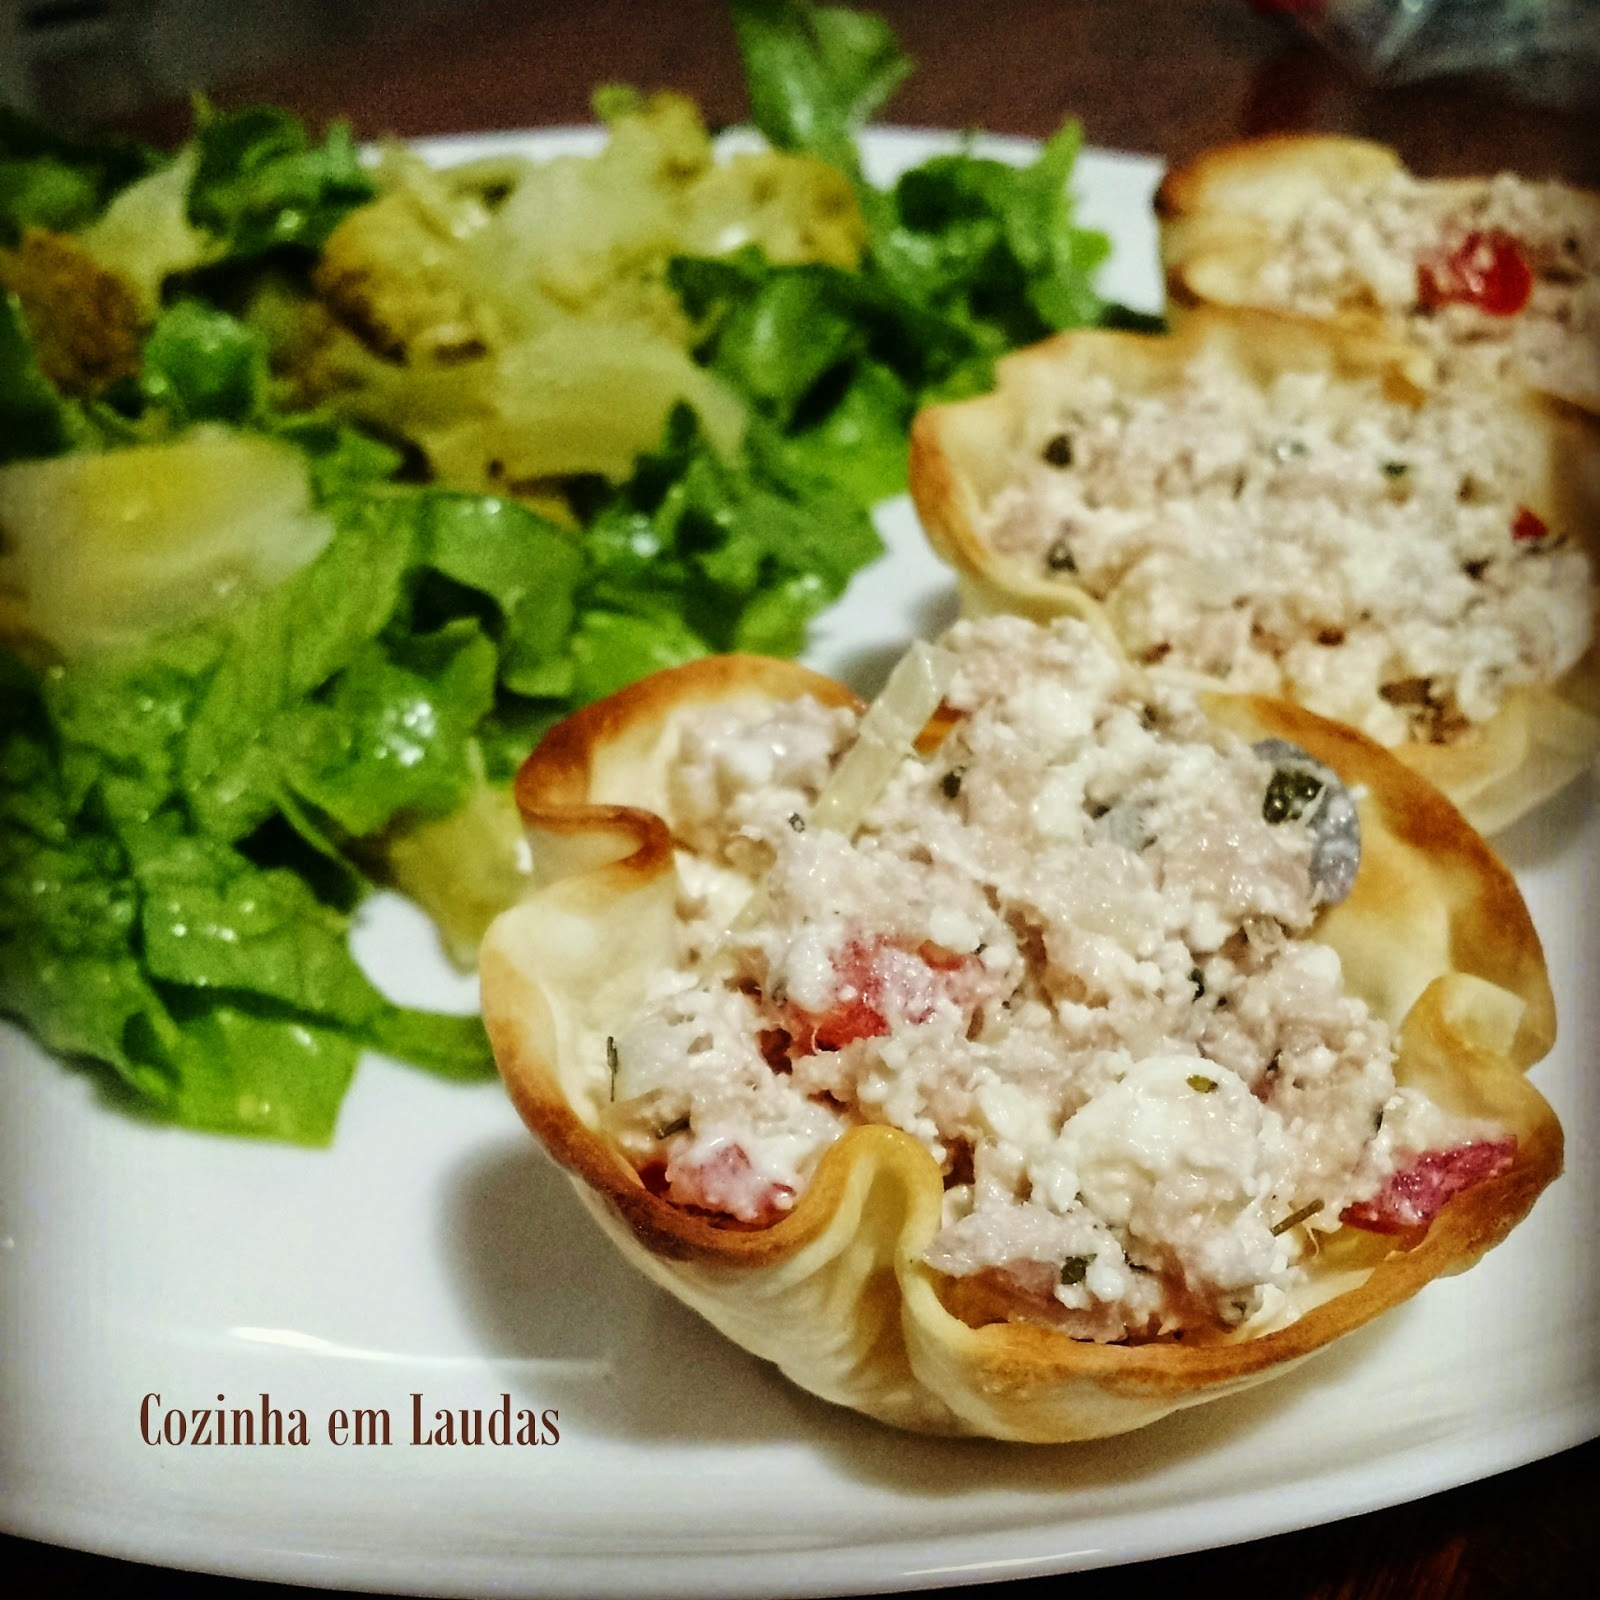 Cestinhas de atum e ricota [Tuna baskets and ricotta]